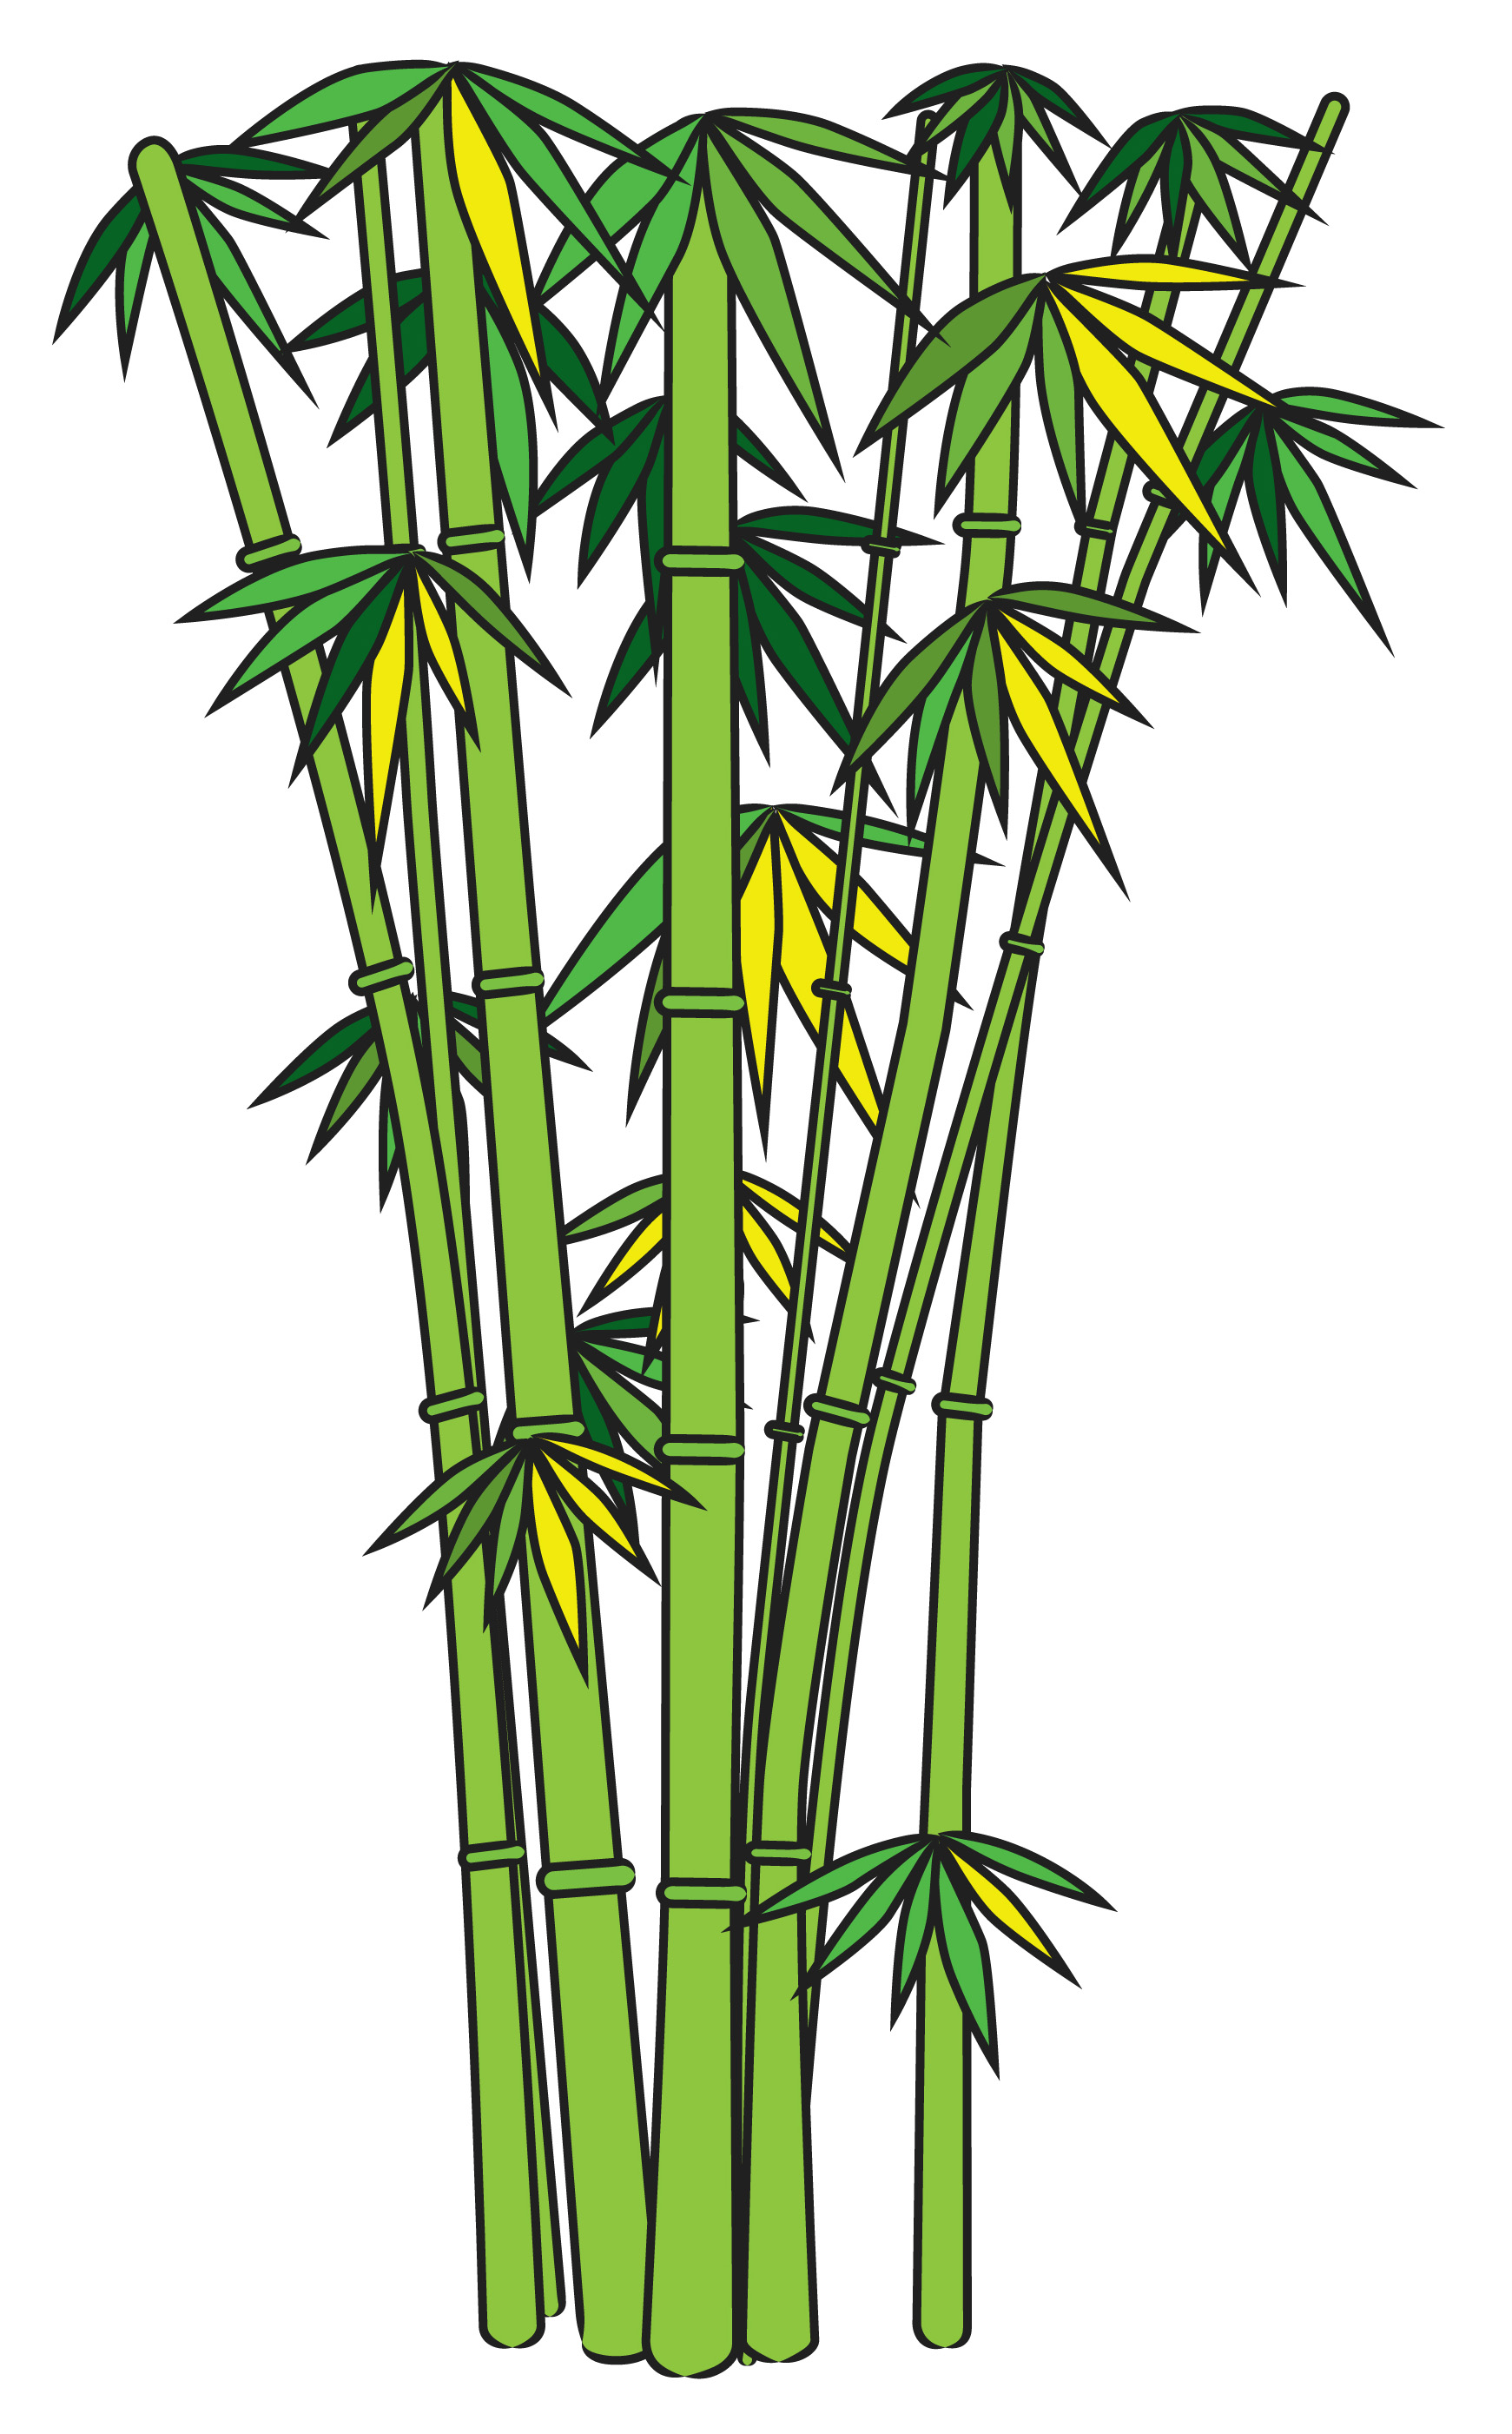 Bamboo plants clipart.